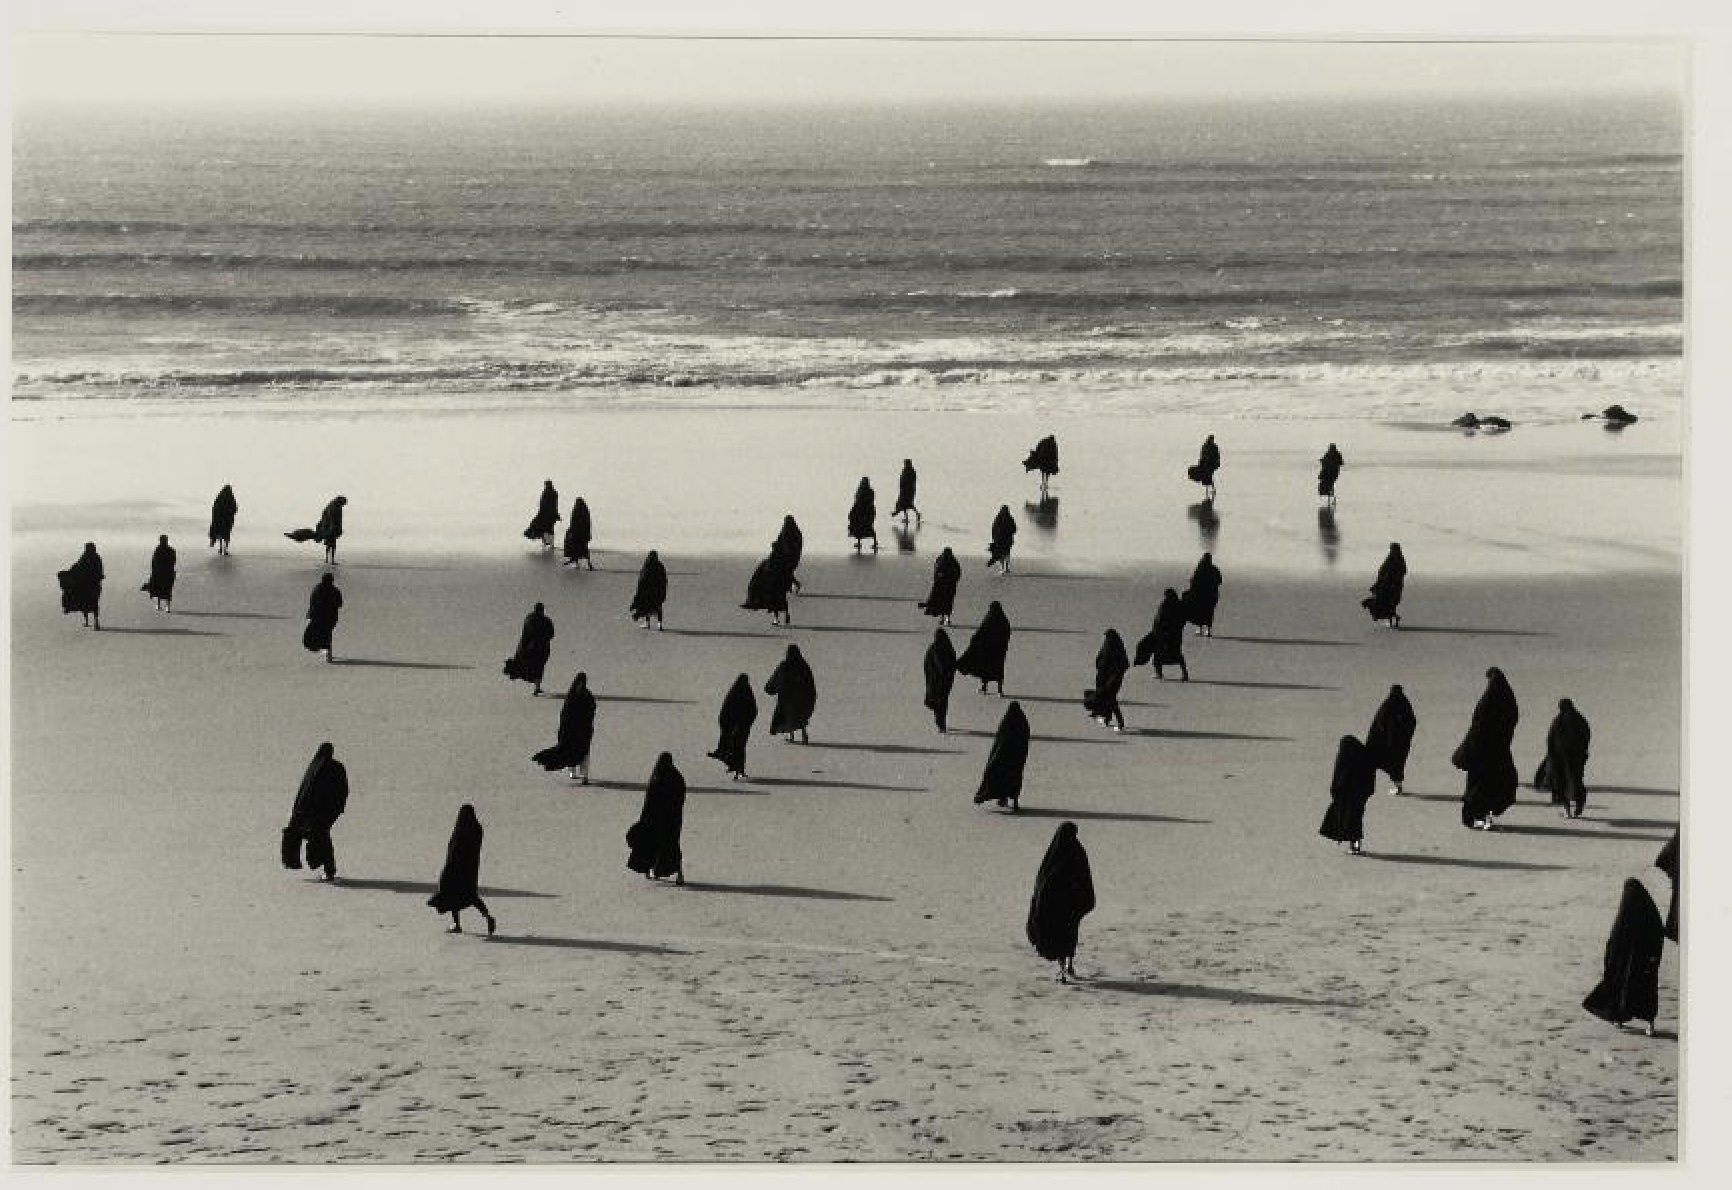 Untitled  from the Rapture series, 1999. Silver gelatin print, 50.8 x 60.9 cm.